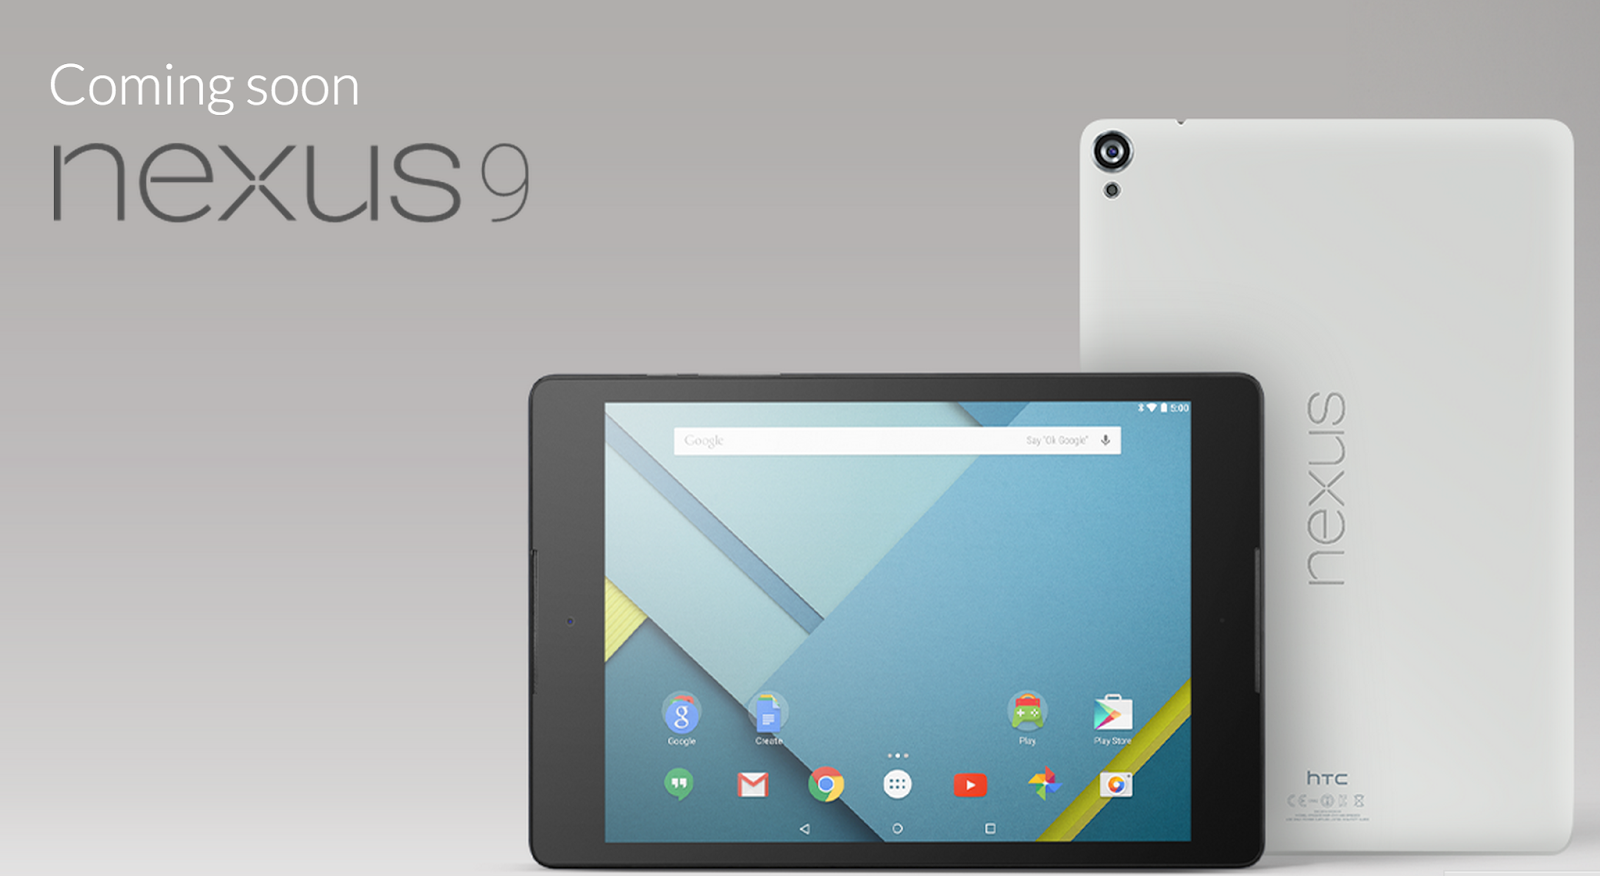 Nexus 9: A Worthy Choice Over iPad Mini 3 and iPad Air 2